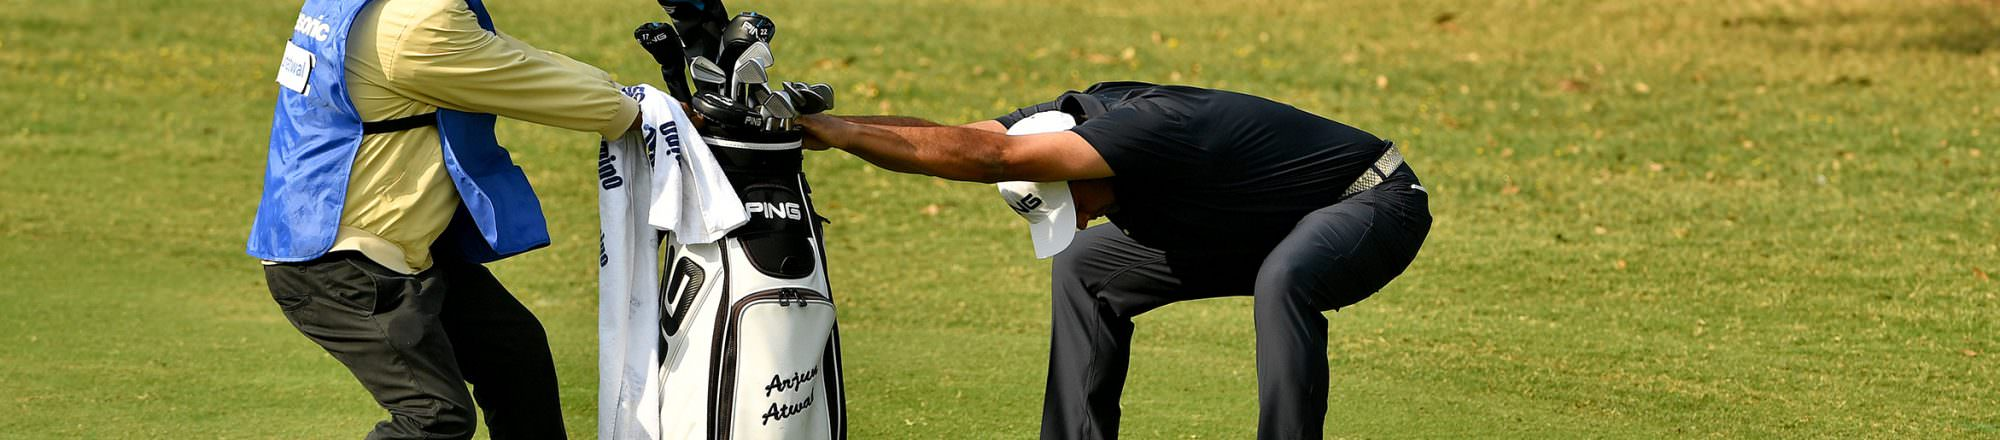 The never-ending battle with golf's ludicrous mind games